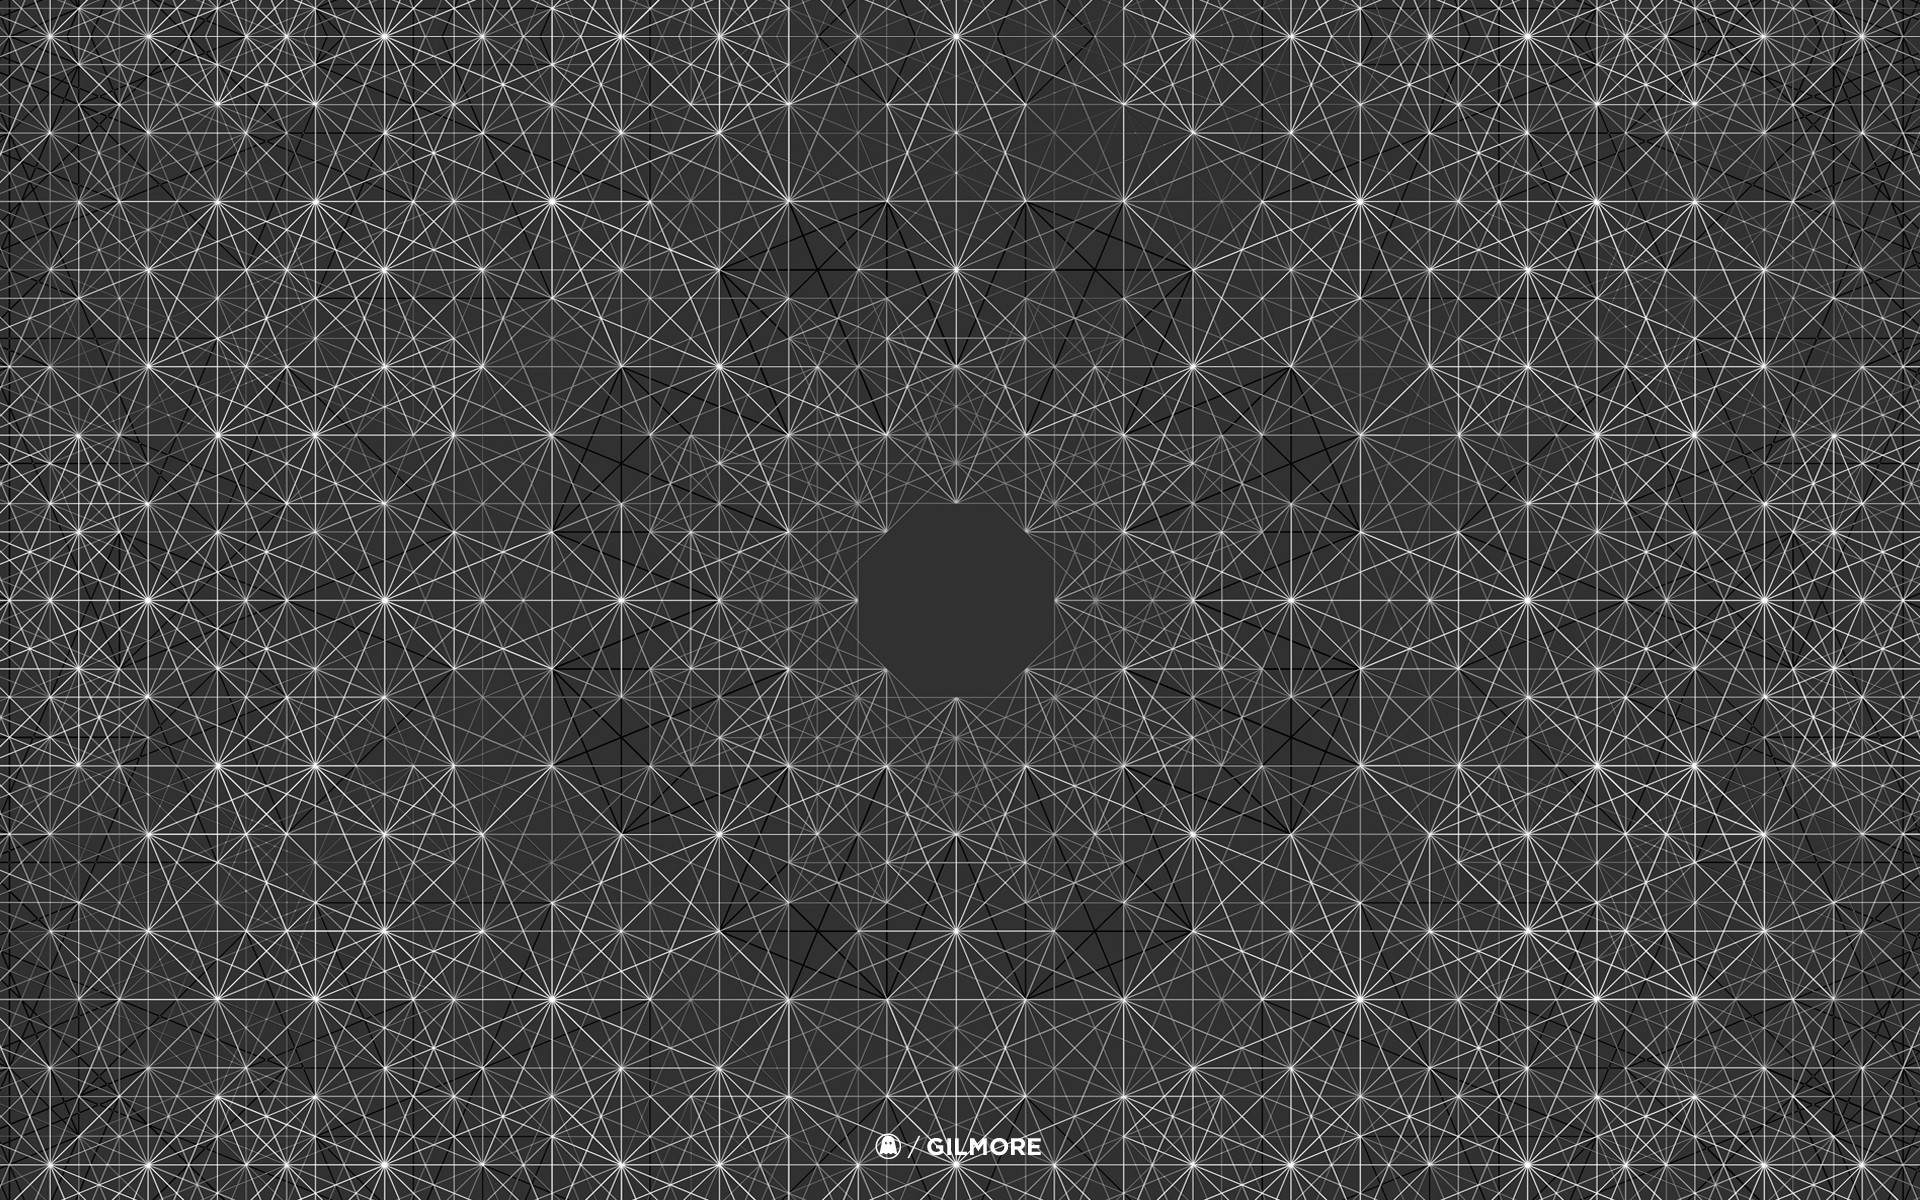 Geometry Wallpaper Hd Images & Pictures - Becuo